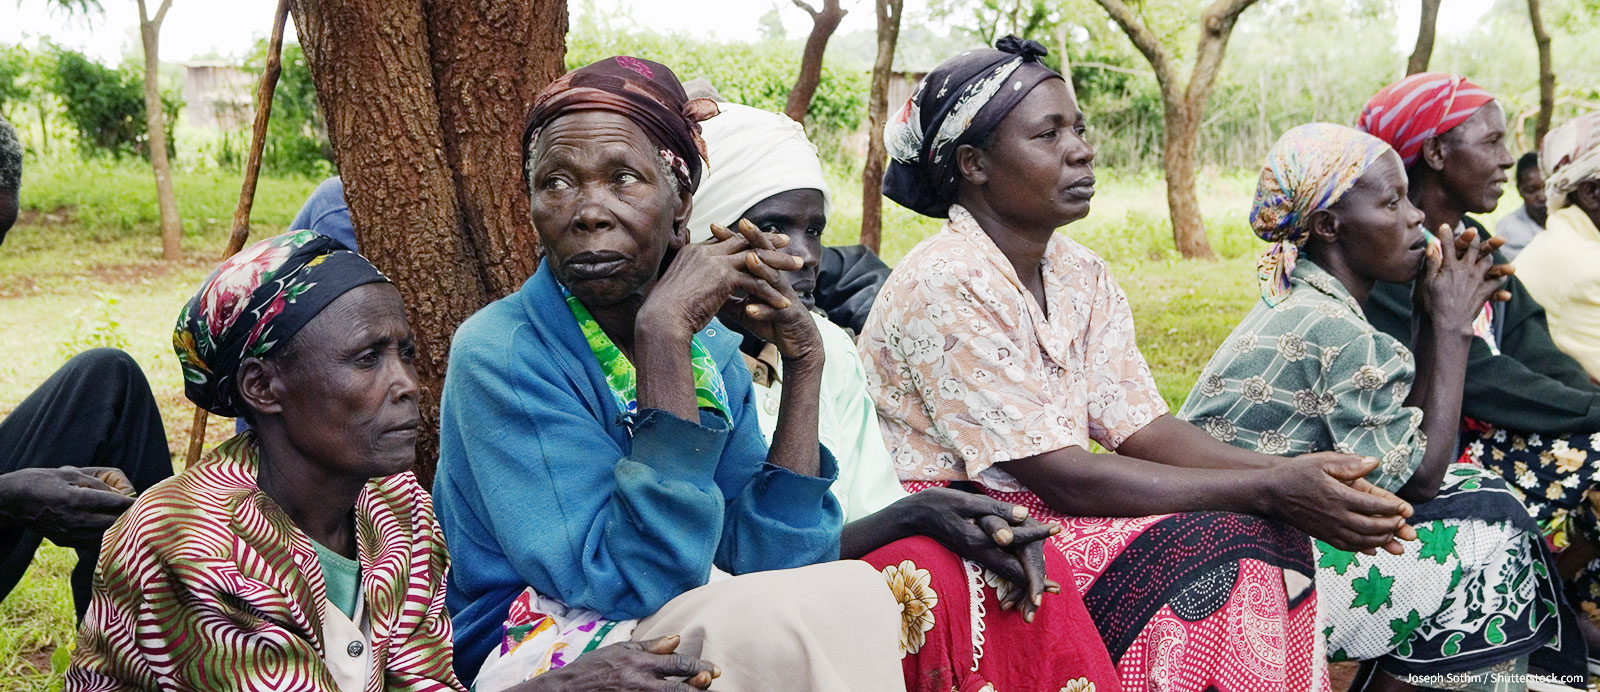 Widows in Meru, Kenya, Africa who have lost their husbands and have only themselves as a group to look after each other.